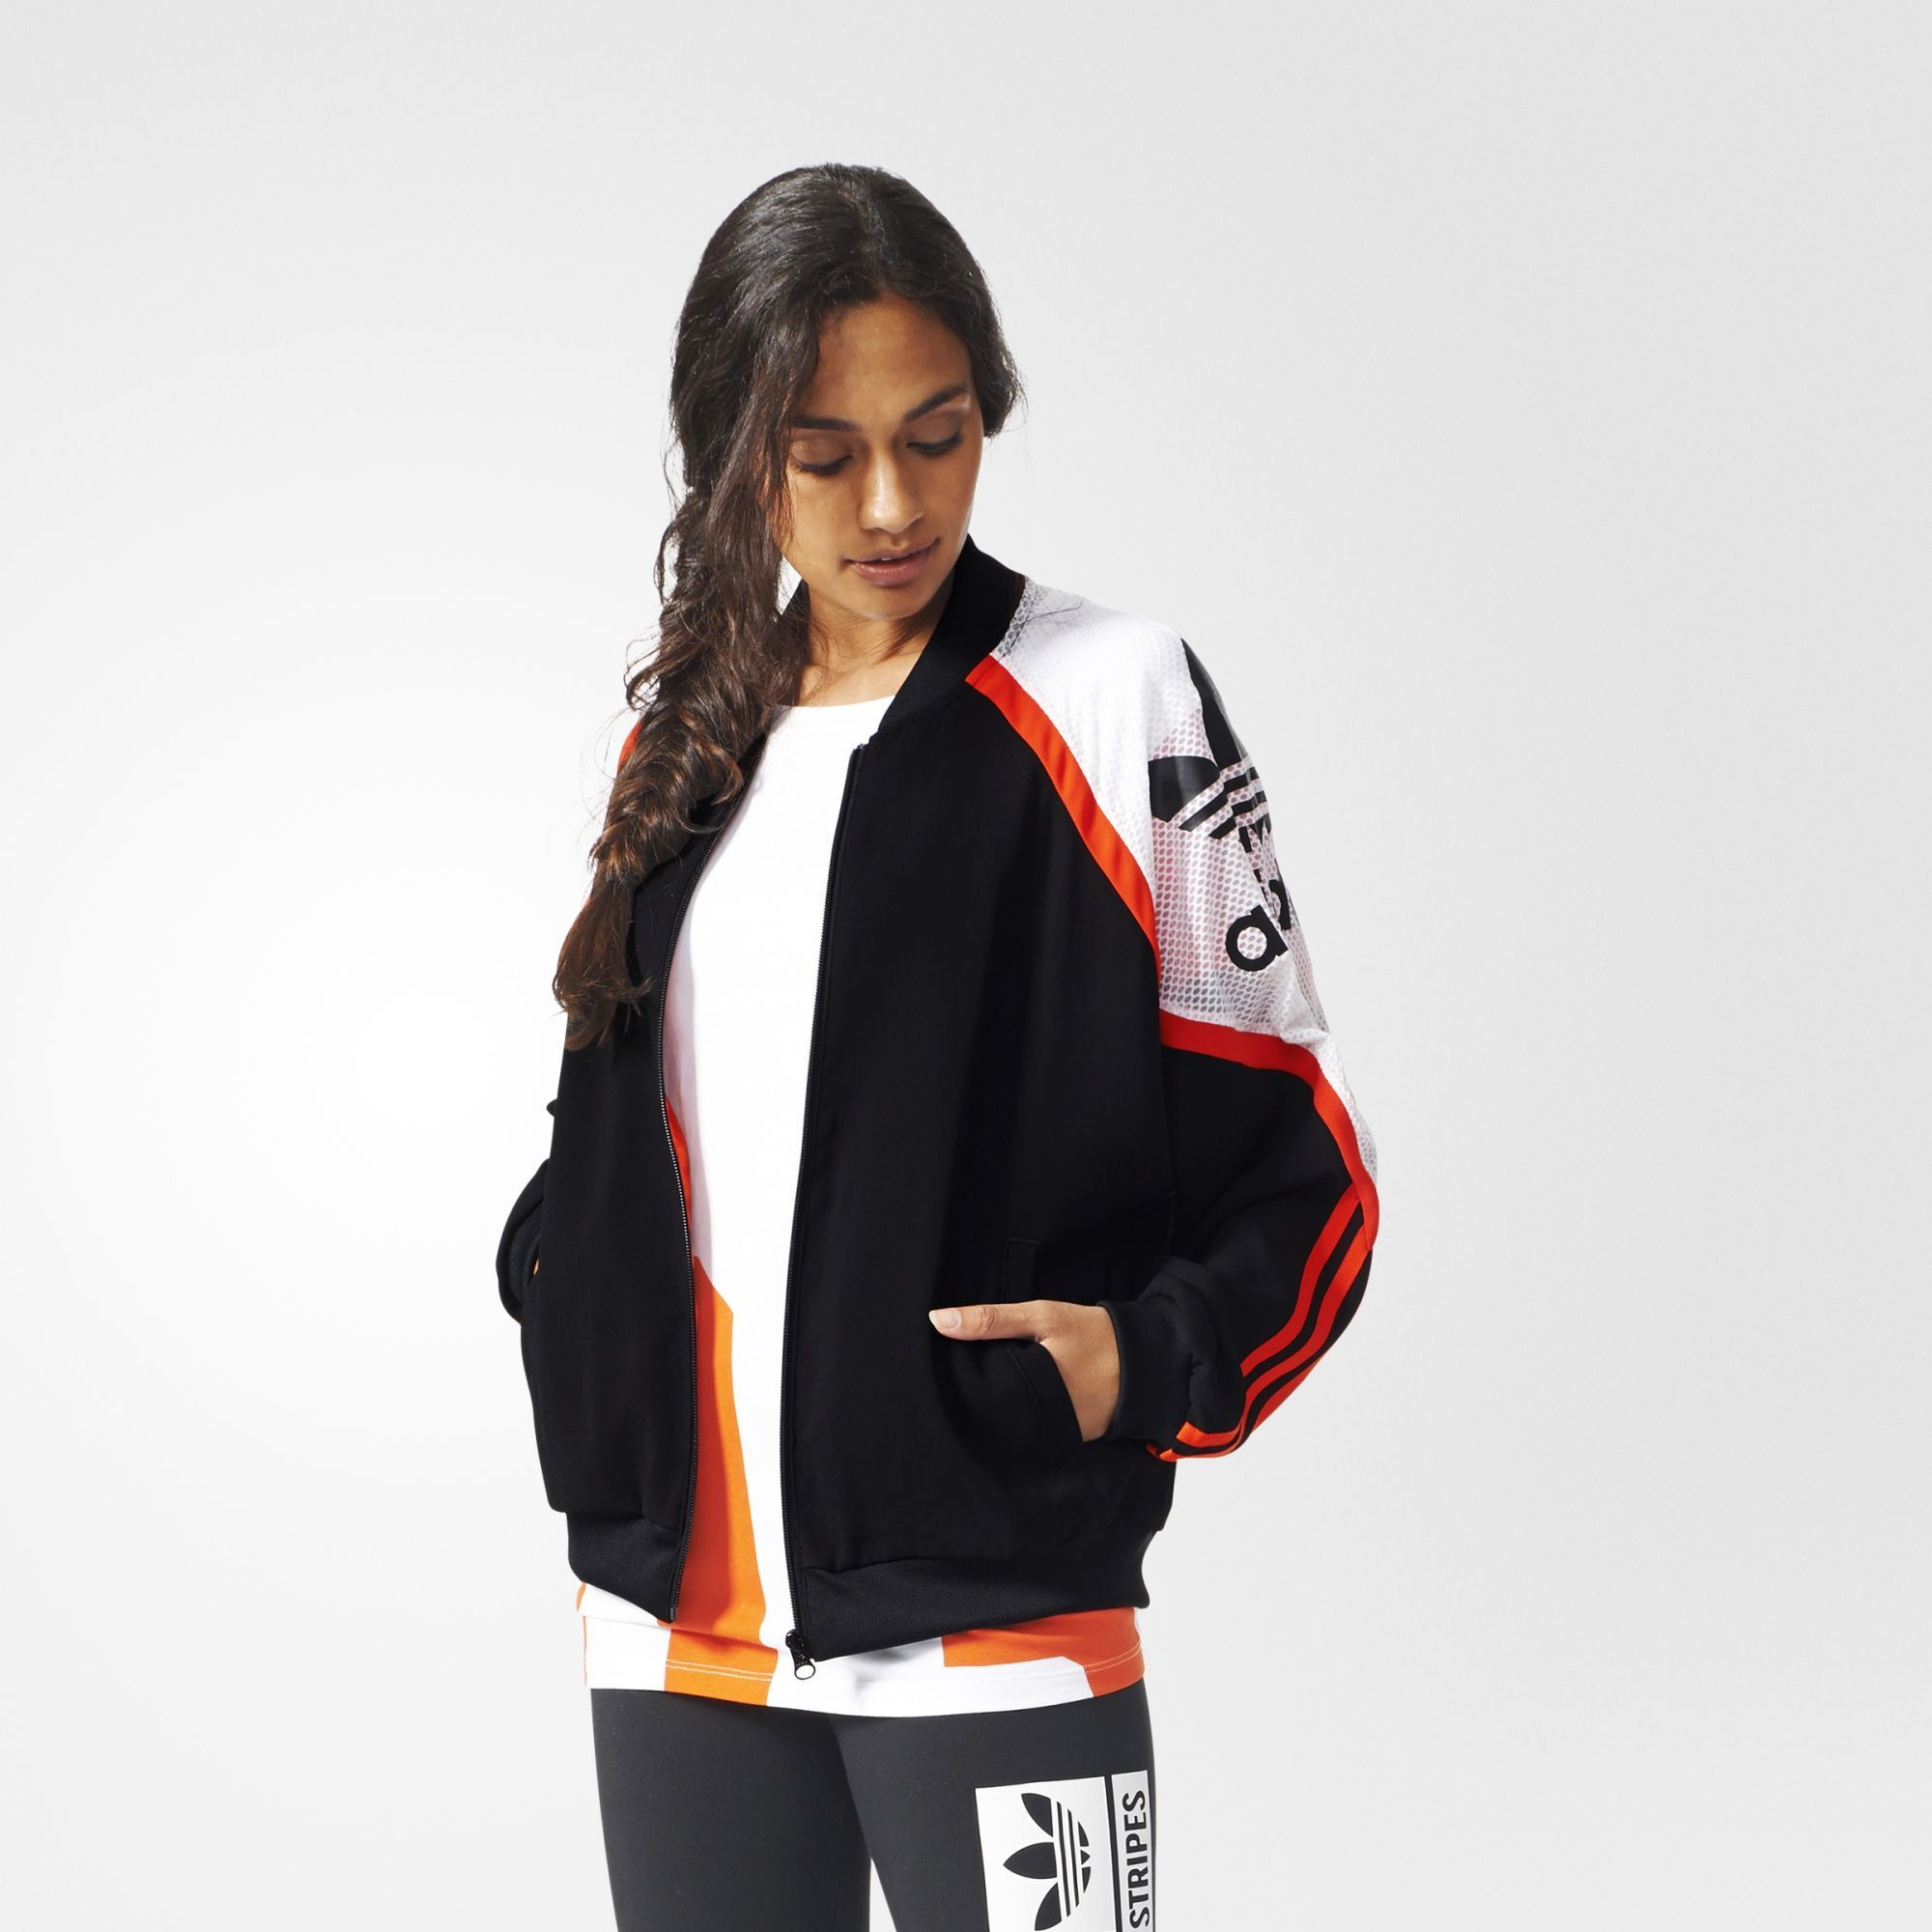 71c547043 adidas - Basketball Track Jacket | shopping list in 2019 | Adidas ...